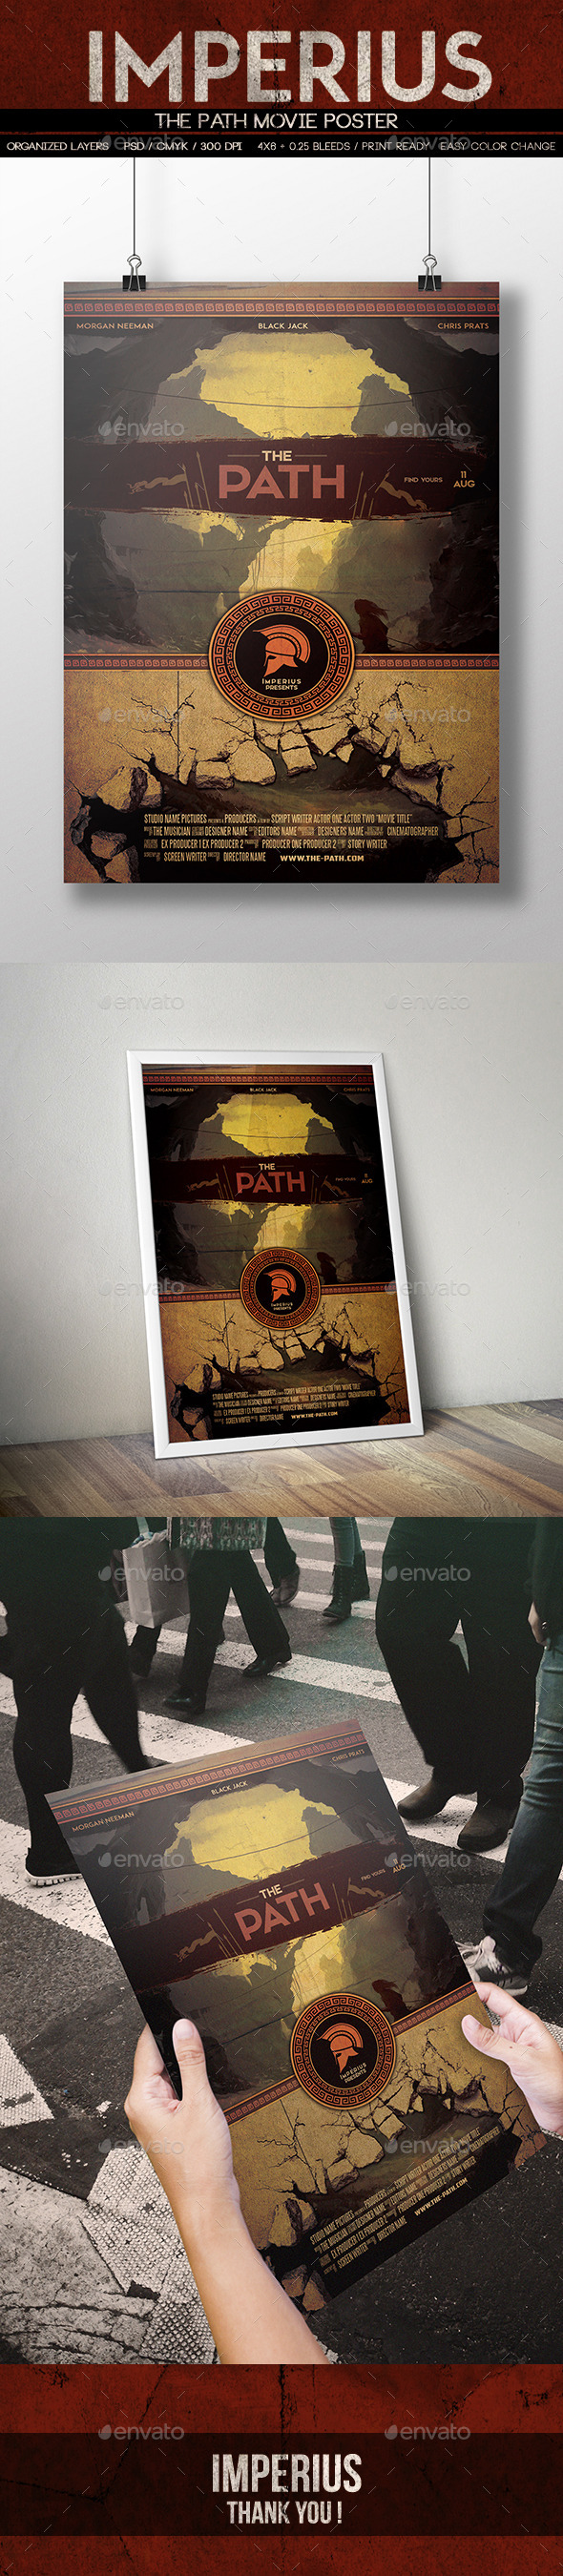 The Path Poster - Miscellaneous Print Templates